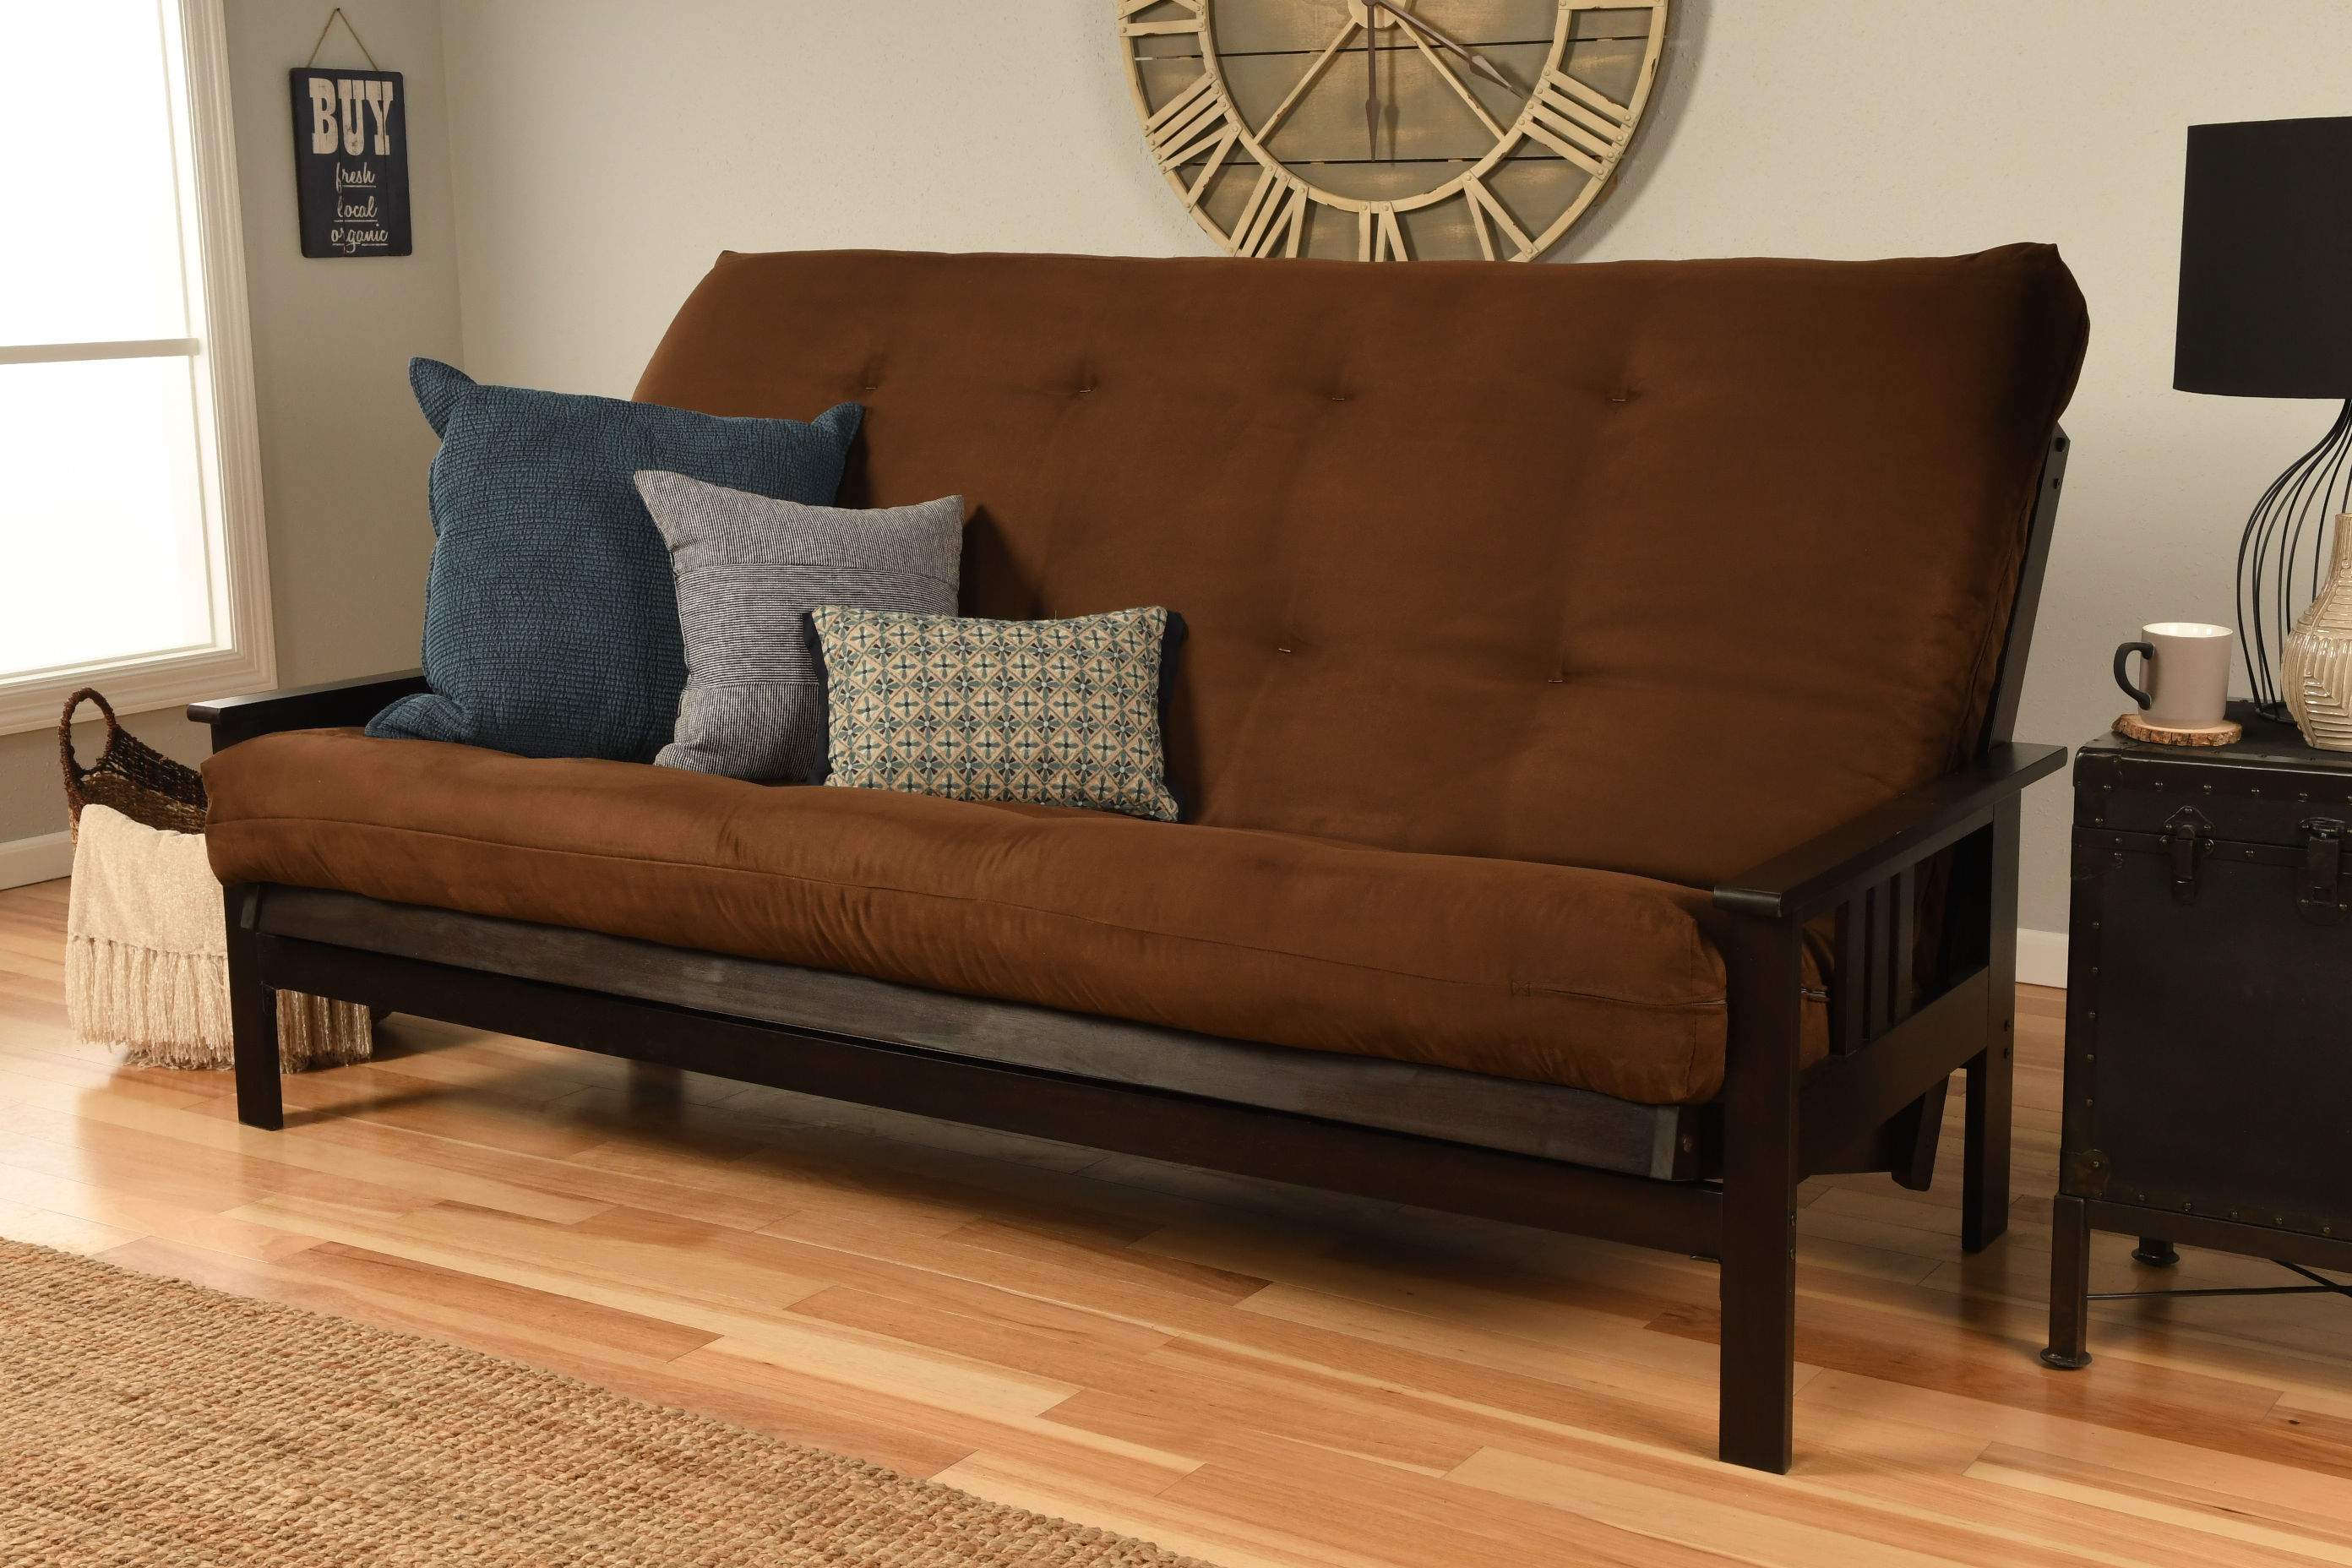 Kodiak furniture monterey espresso frame brown suede mattress queen futon click to enlarge